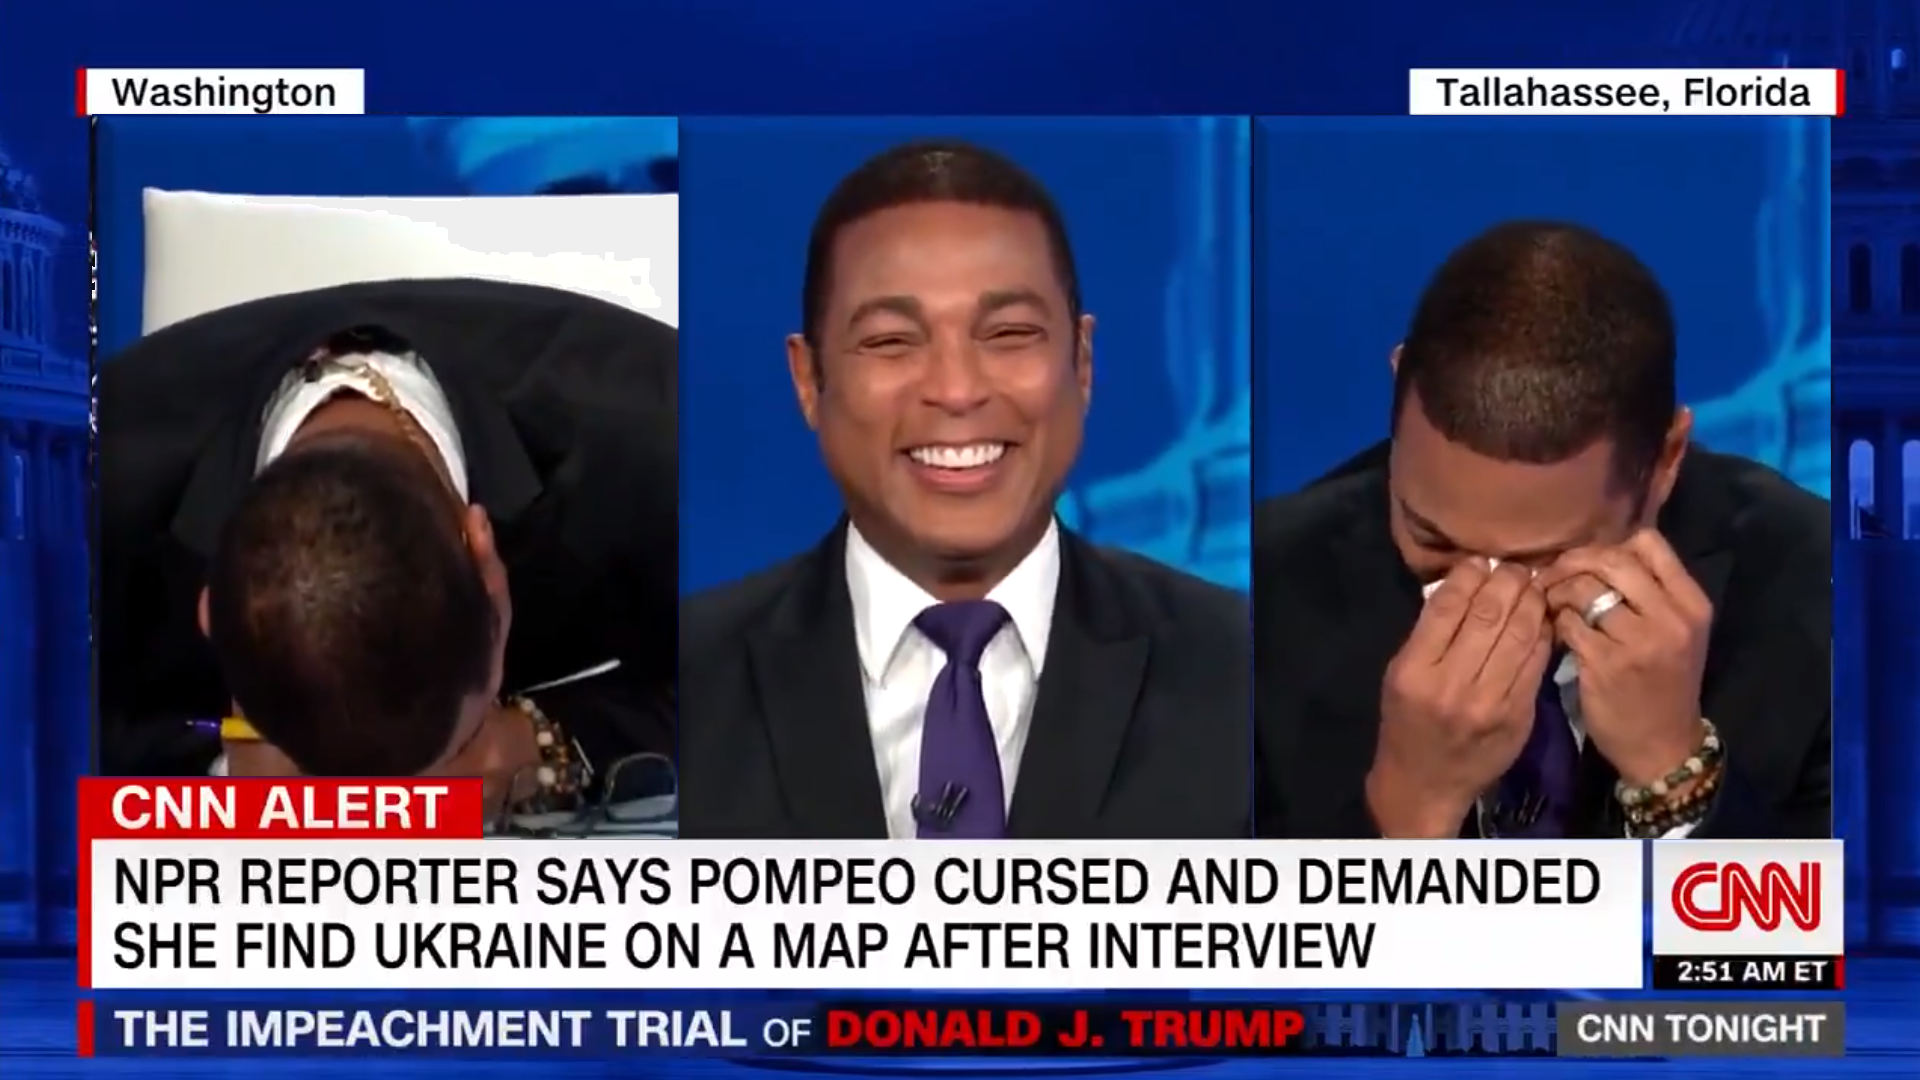 WATCH: Smug CNN host Don Lemon can't stop laughing at Trump voters